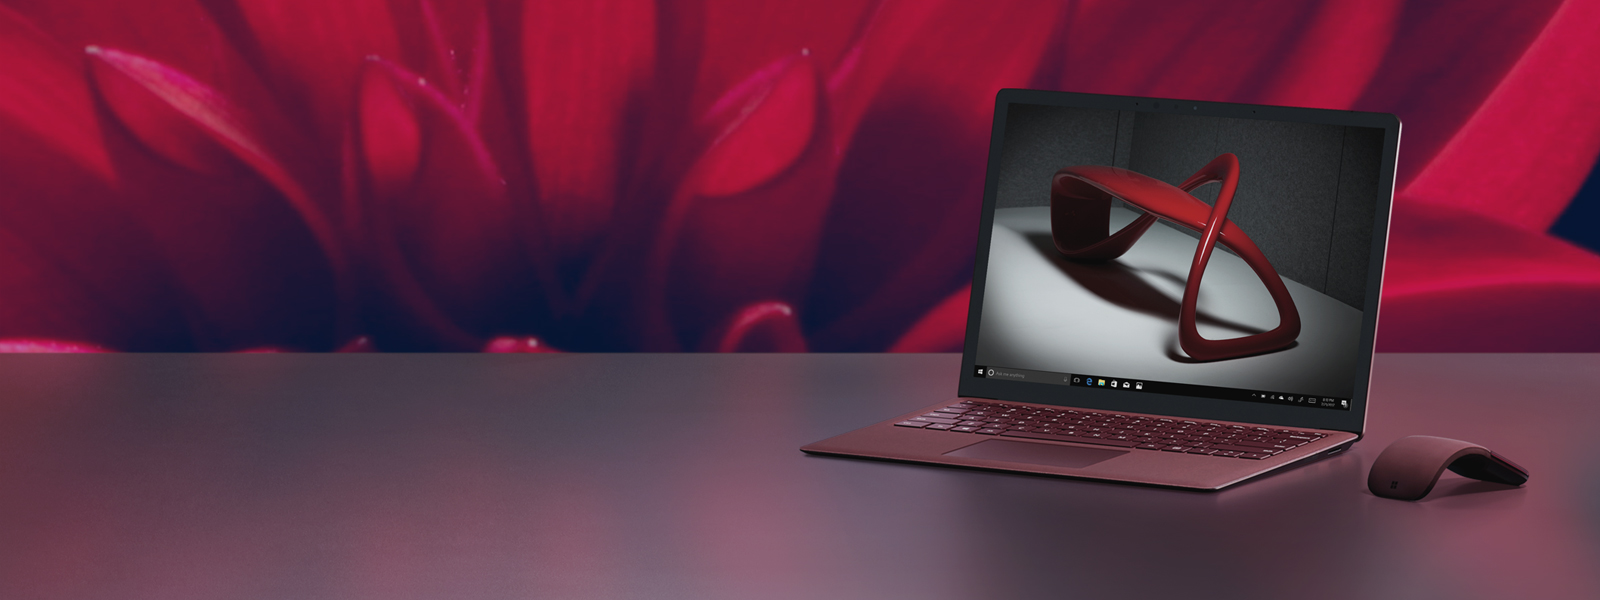 A Surface Laptop showing an abstract geometric sculpture on the screen